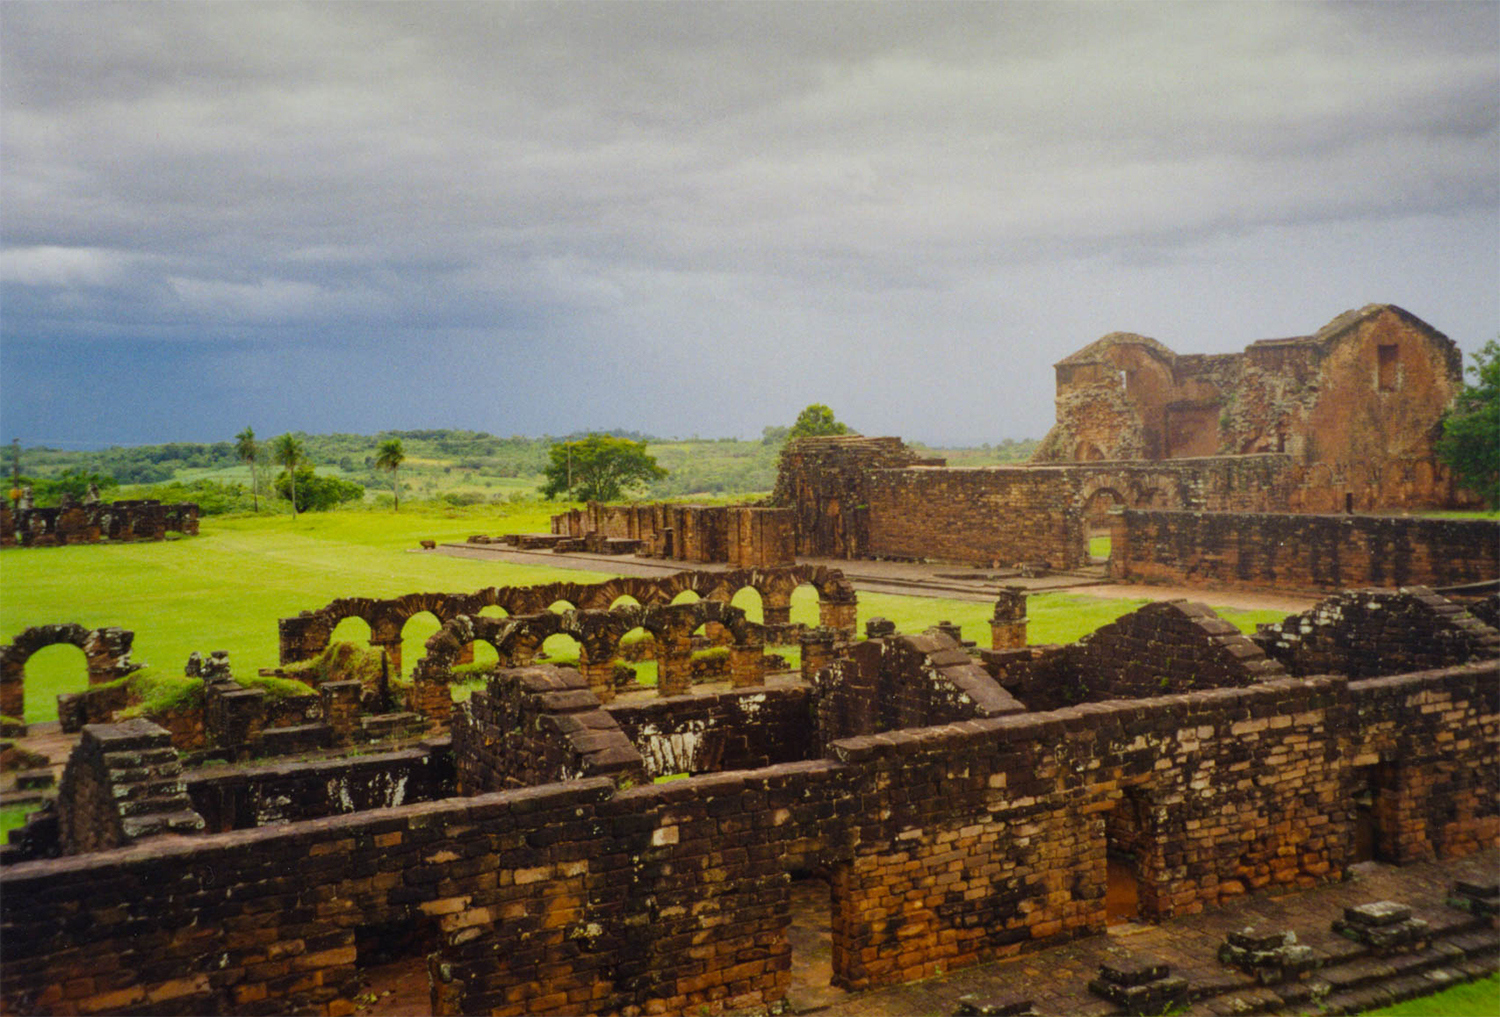 <p>Storm clouds arrive at la Santísima Trinidad de Paraná, one of the Jesuit <em>reducciónes</em> (missionary colonies) built in this region during the 17th and 18th Centuries. They fell into ruin when the Jesuits were expelled by Spain in 1767. </p>